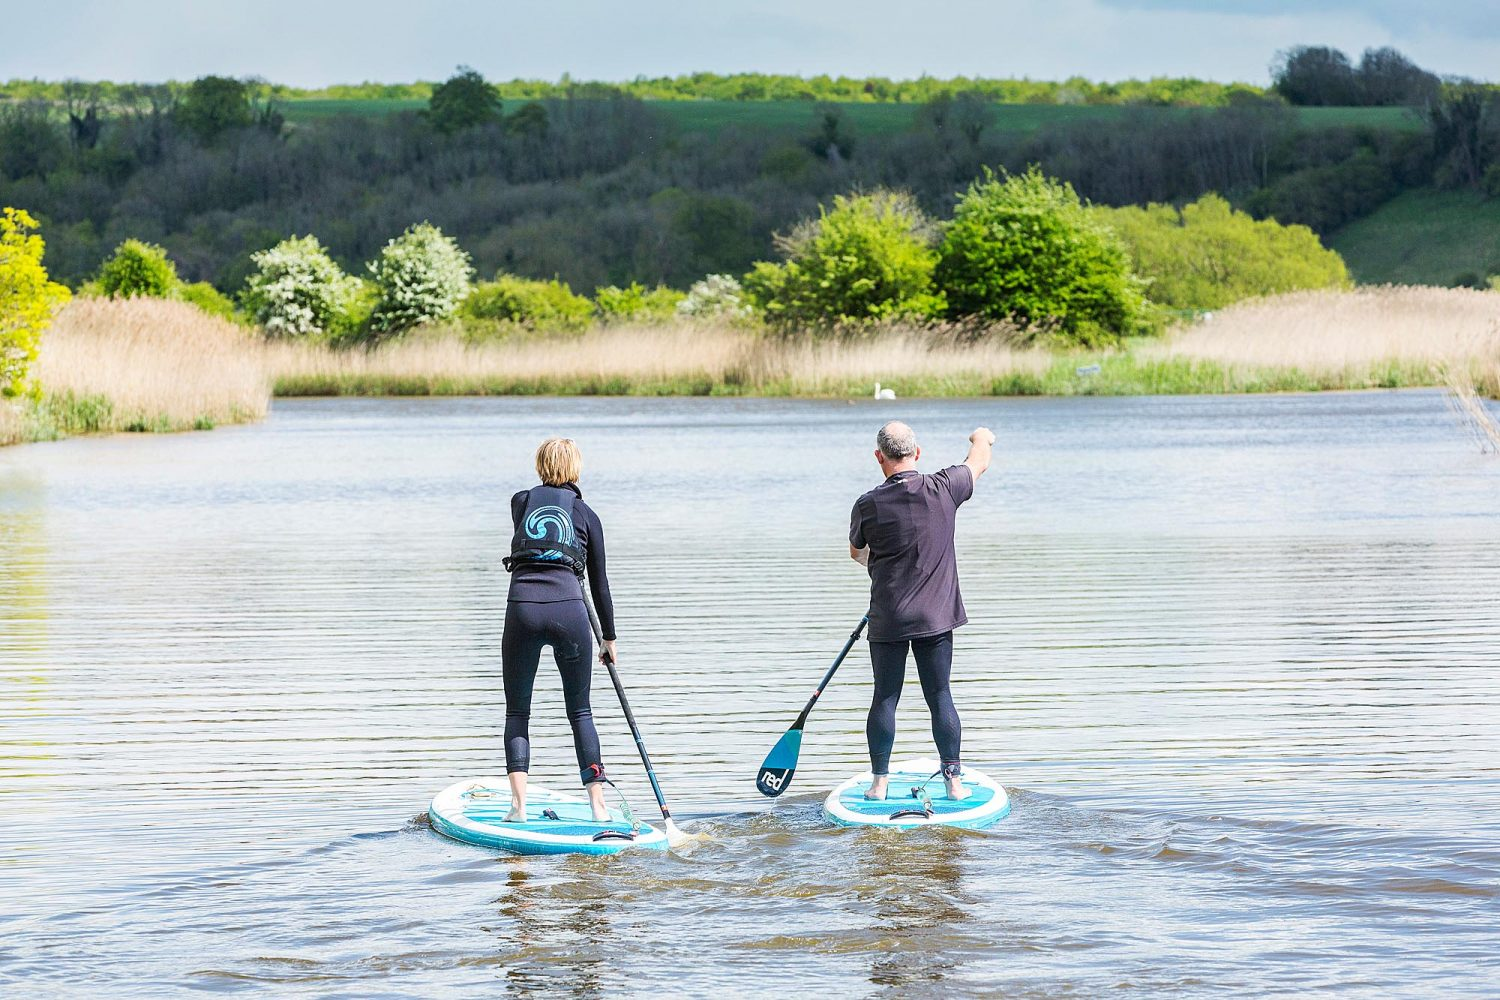 Two paddle boarders in a river